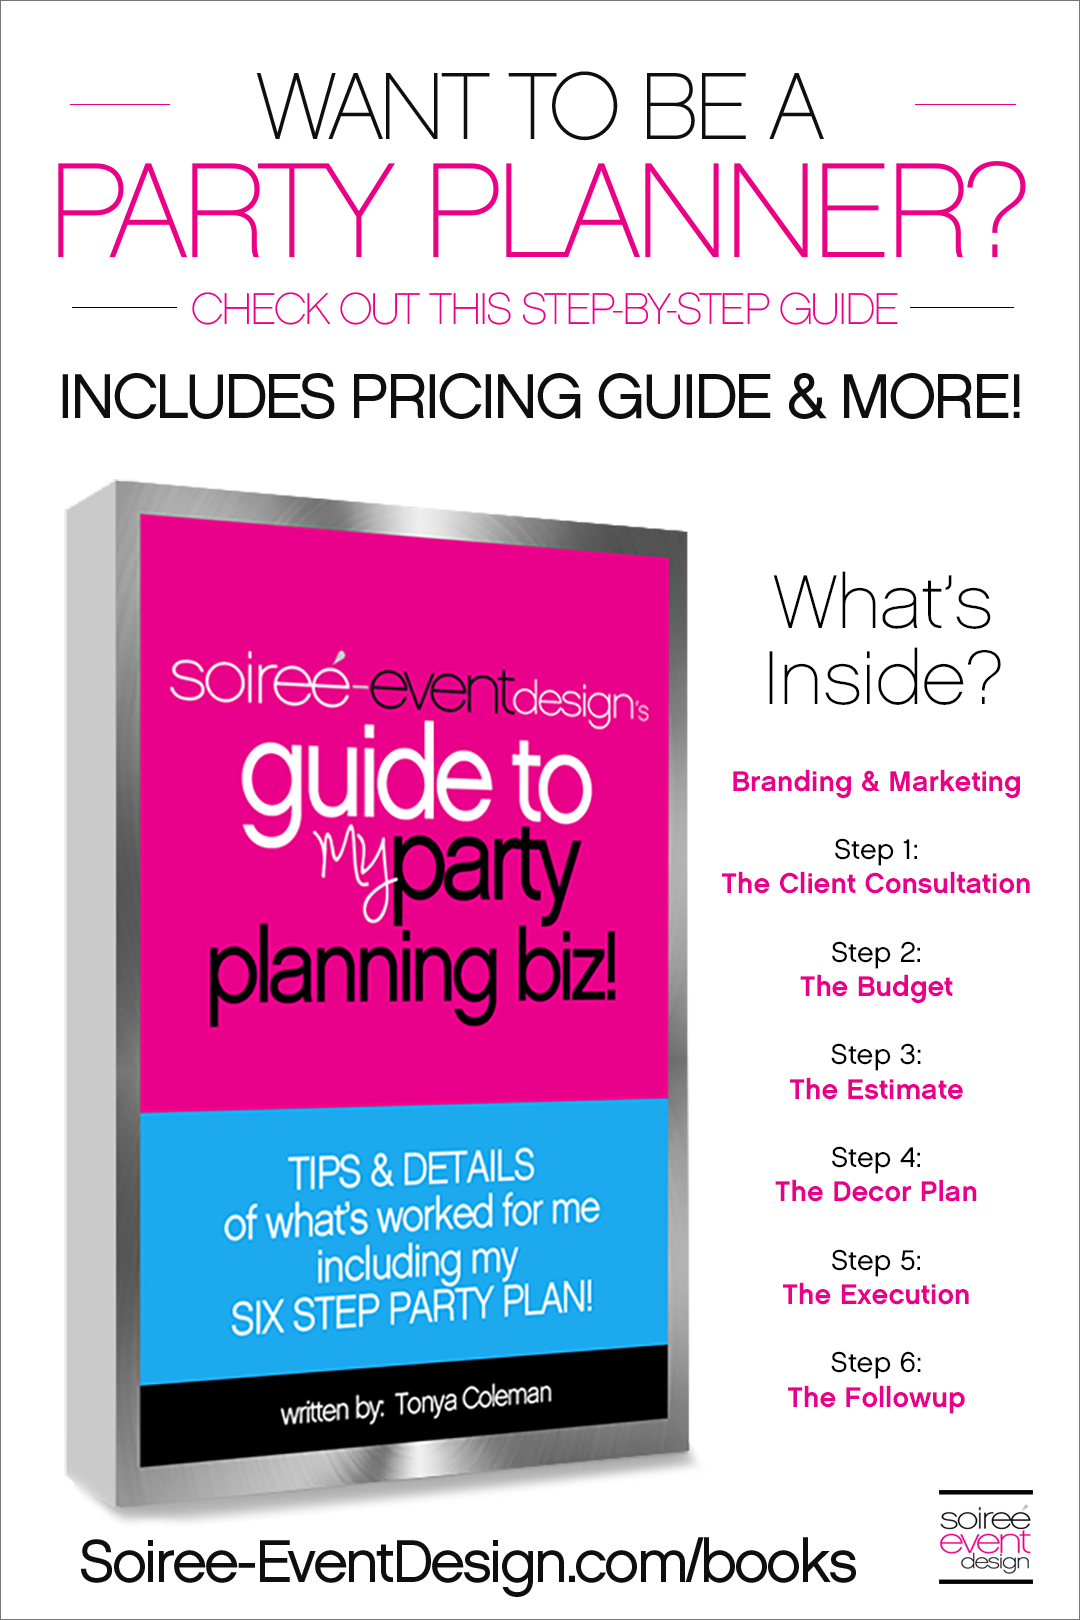 How To Start a Party Planning Business - Soiree Event Design